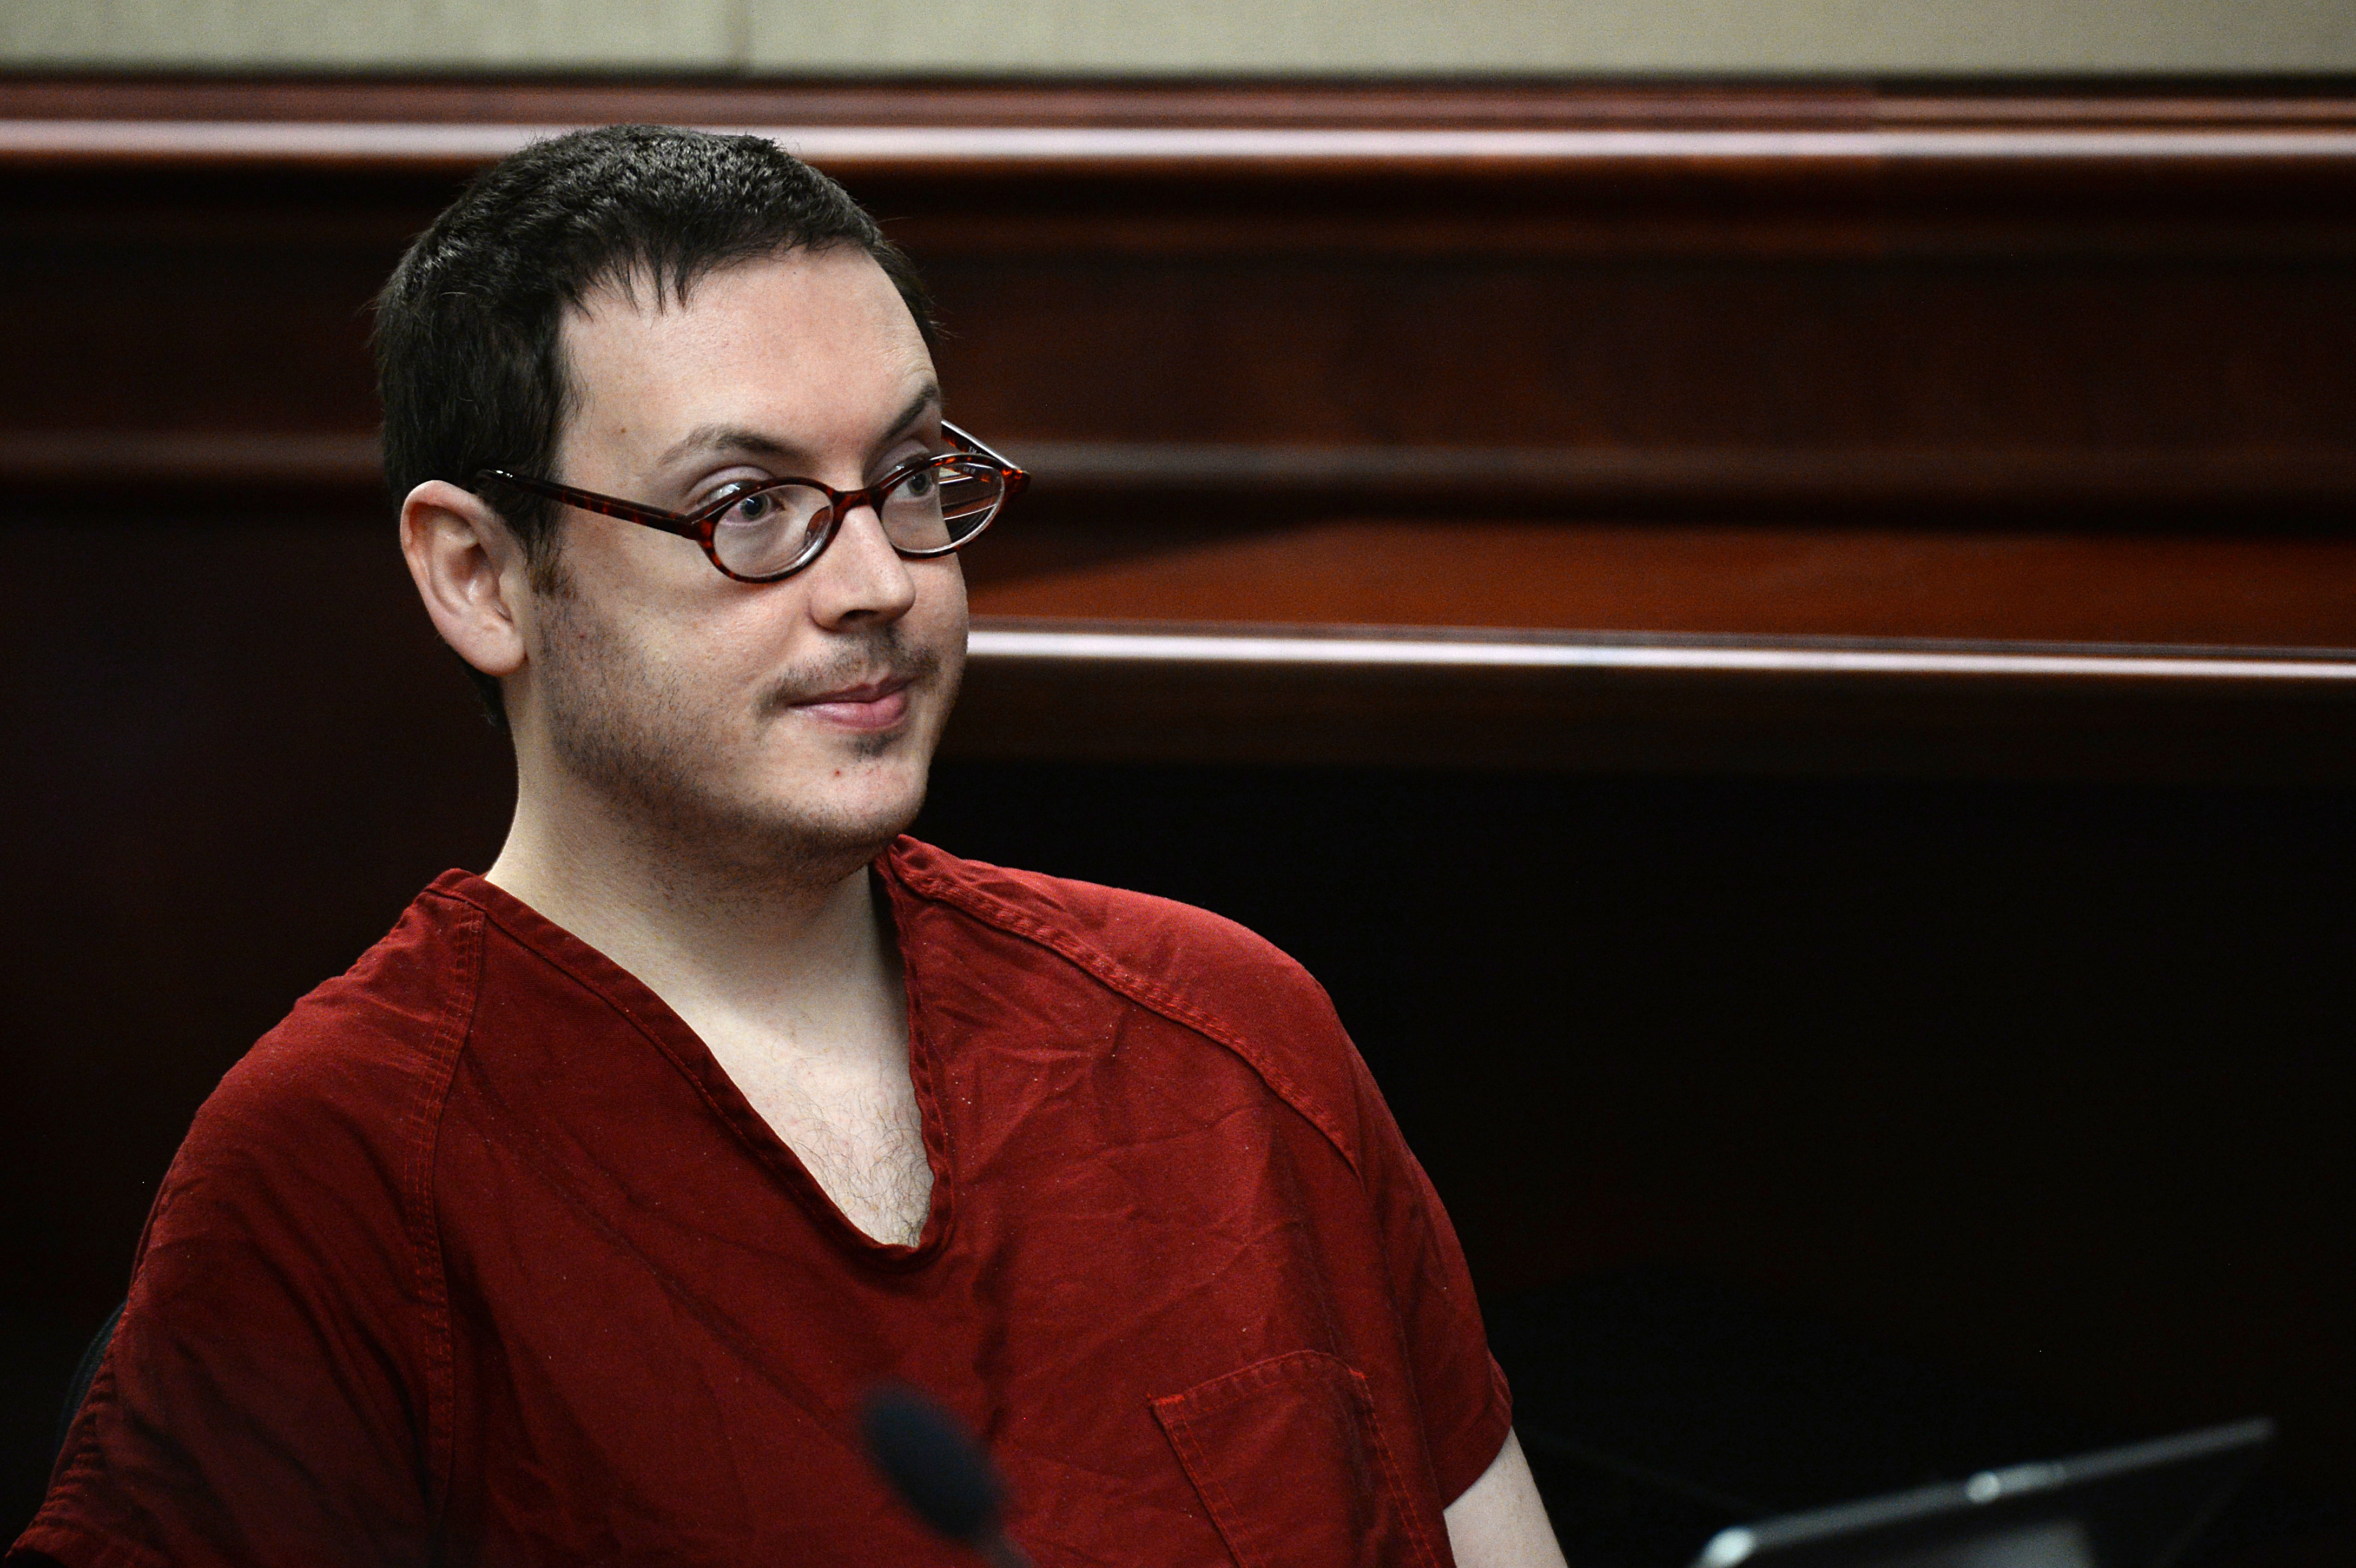 Photo: James Holmes in court August 2015 (AP Photo)